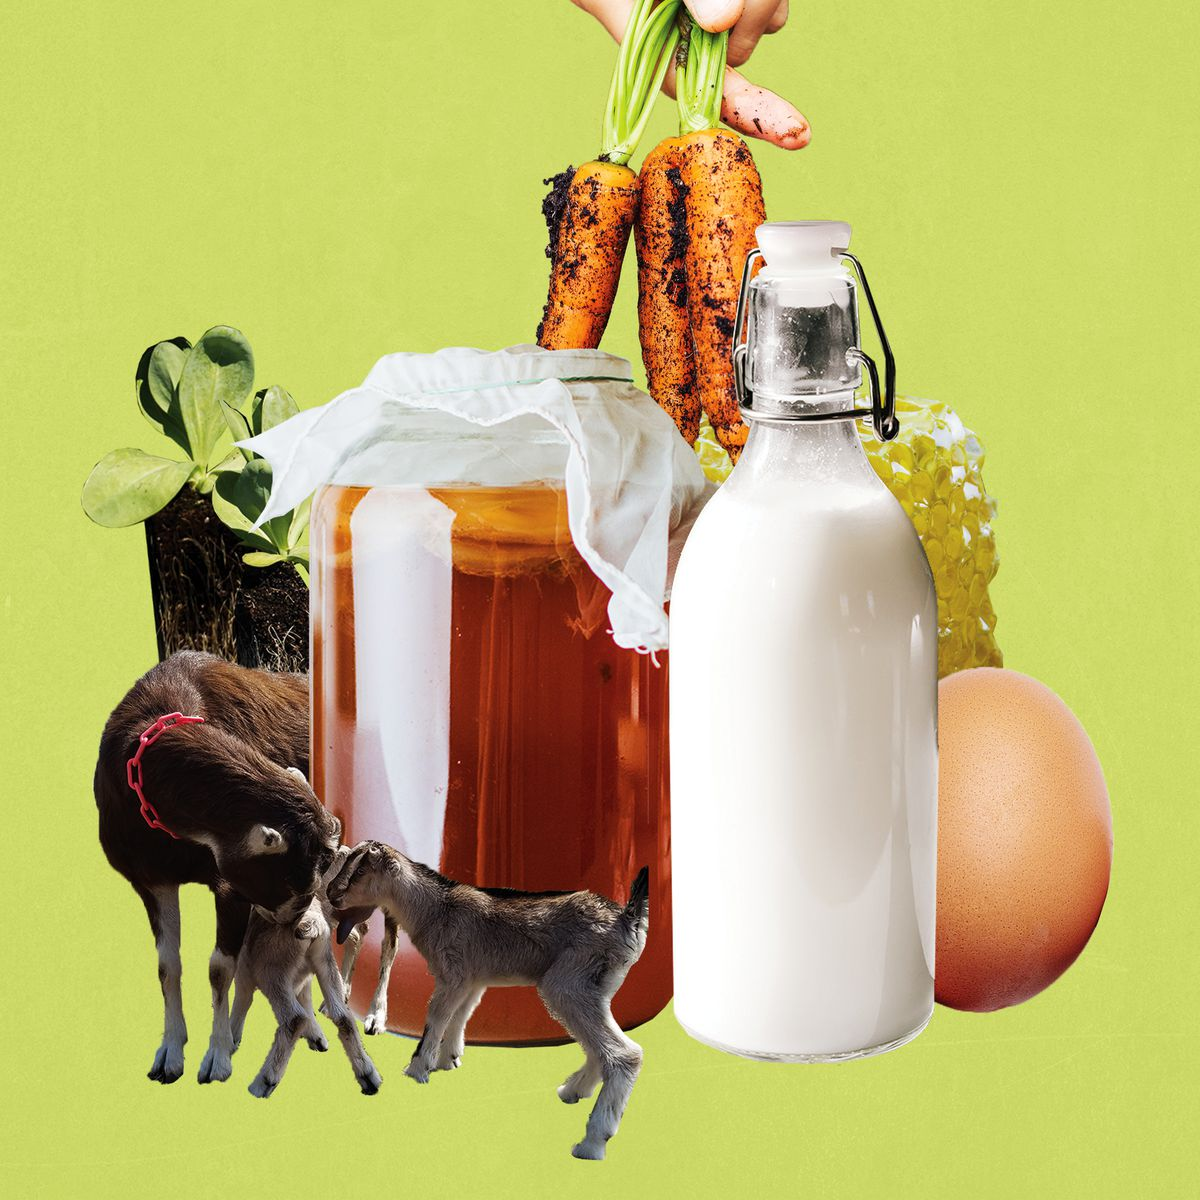 Photo collage of two goats, a bottle of milk, jar of honey, egg, and carrots.